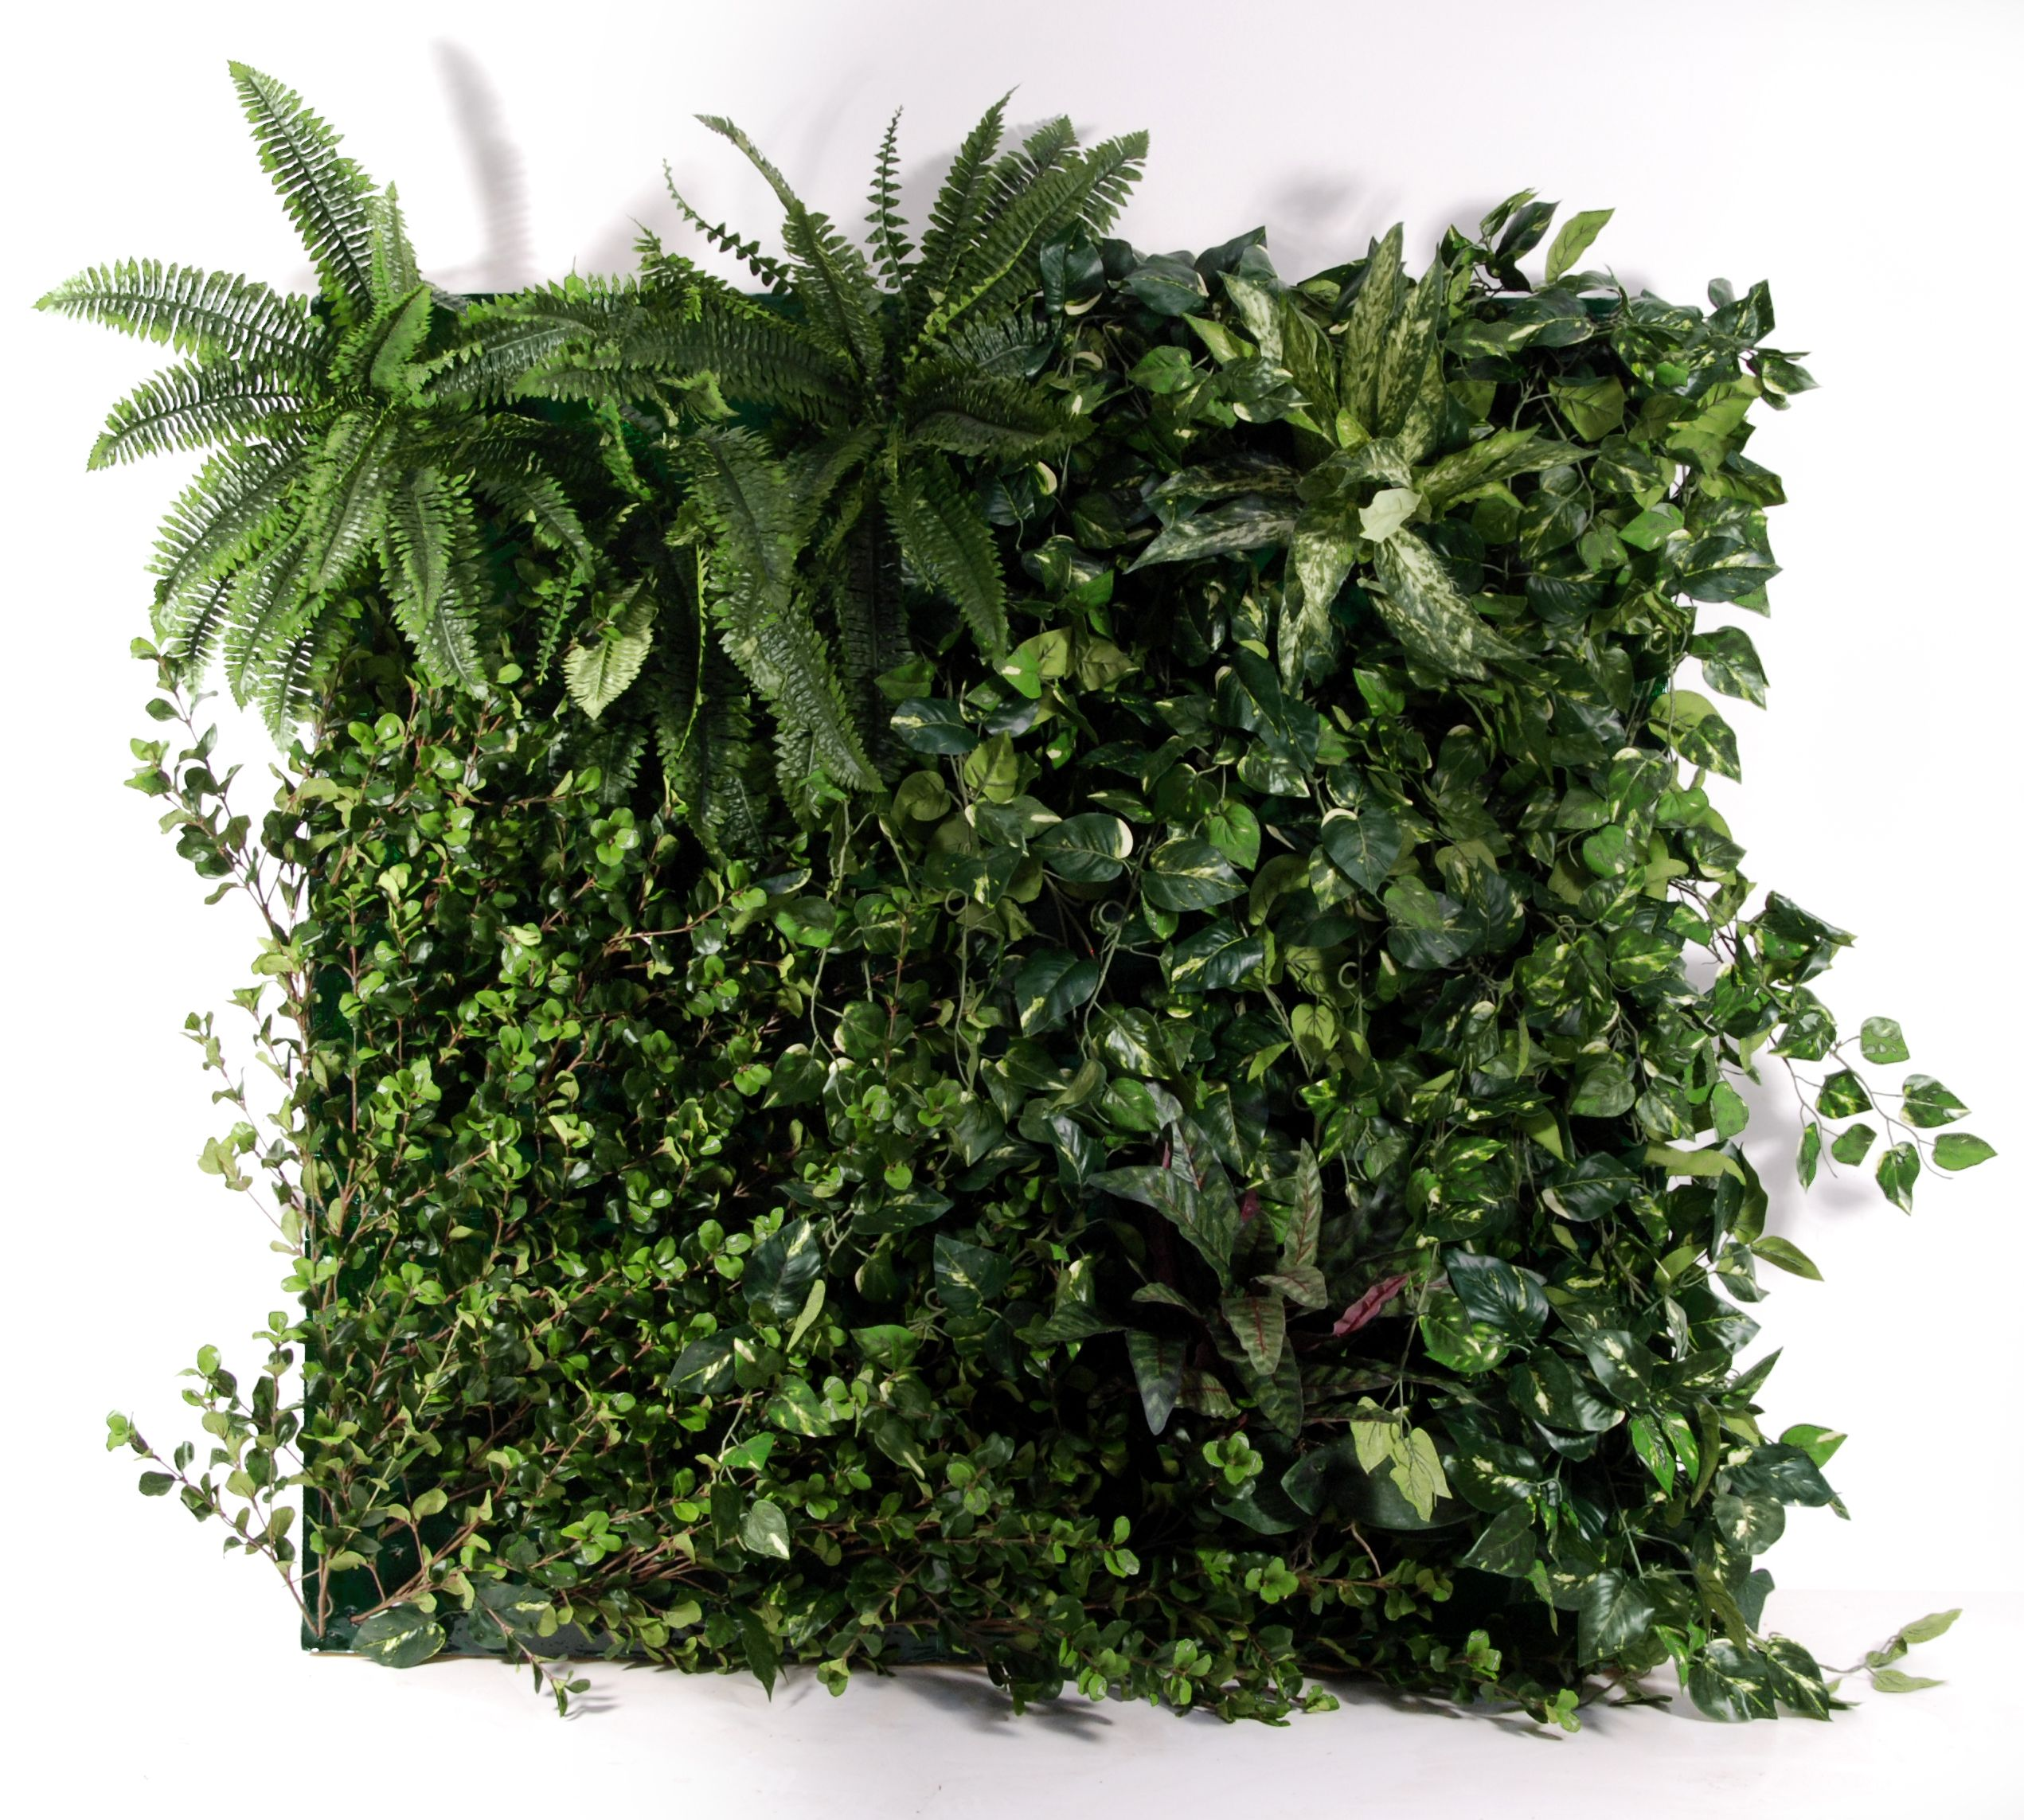 green wall systems area to mask wall expanses using